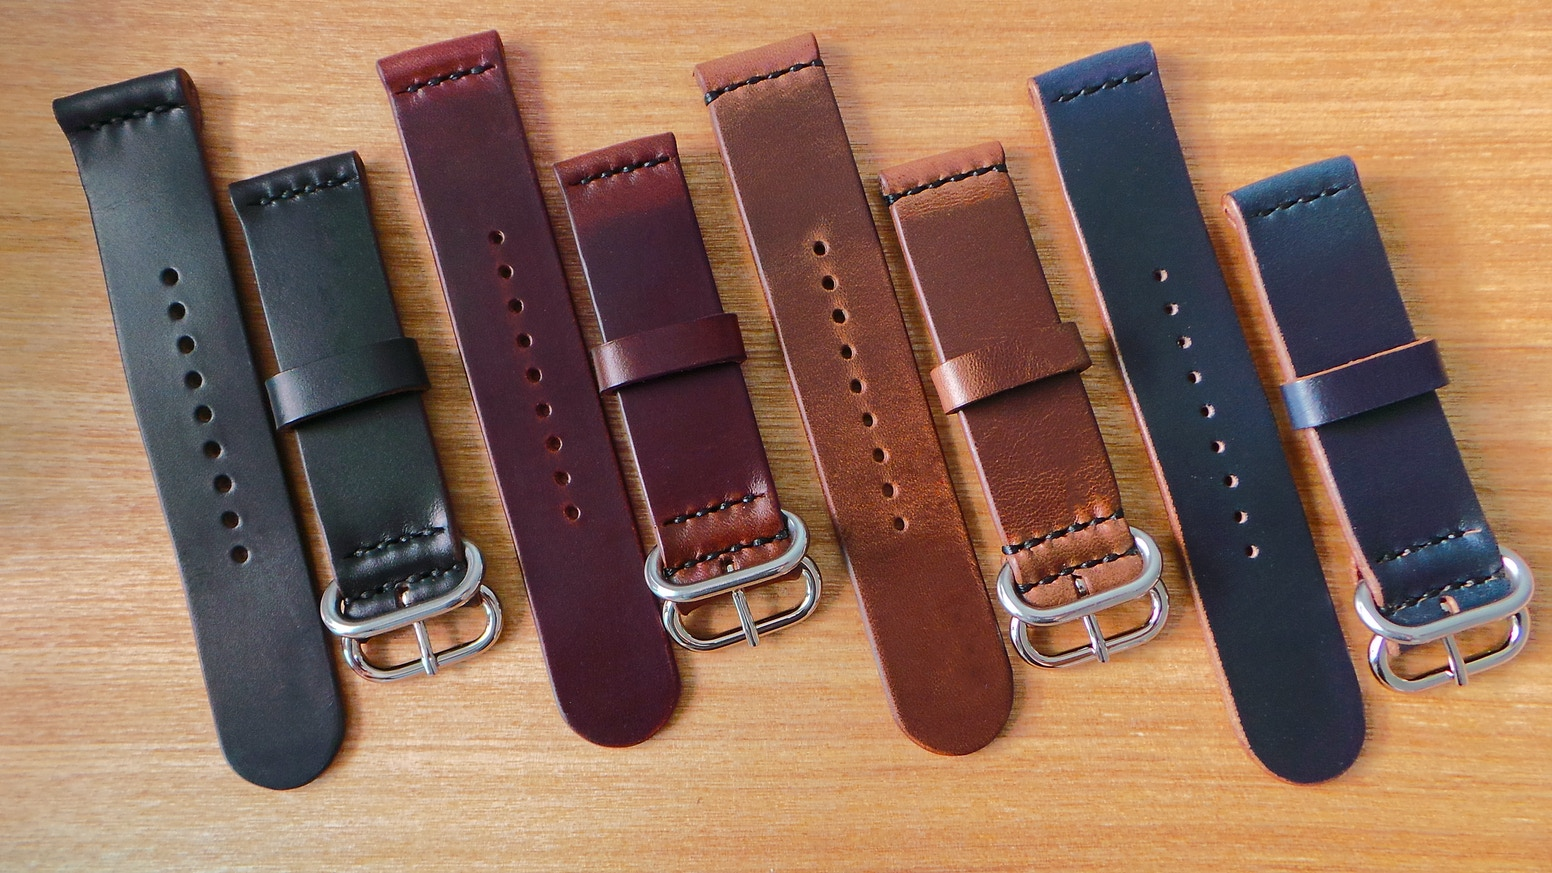 618a53cc4 Get a well made leather watch strap and never worry about watch straps  breaking apart again